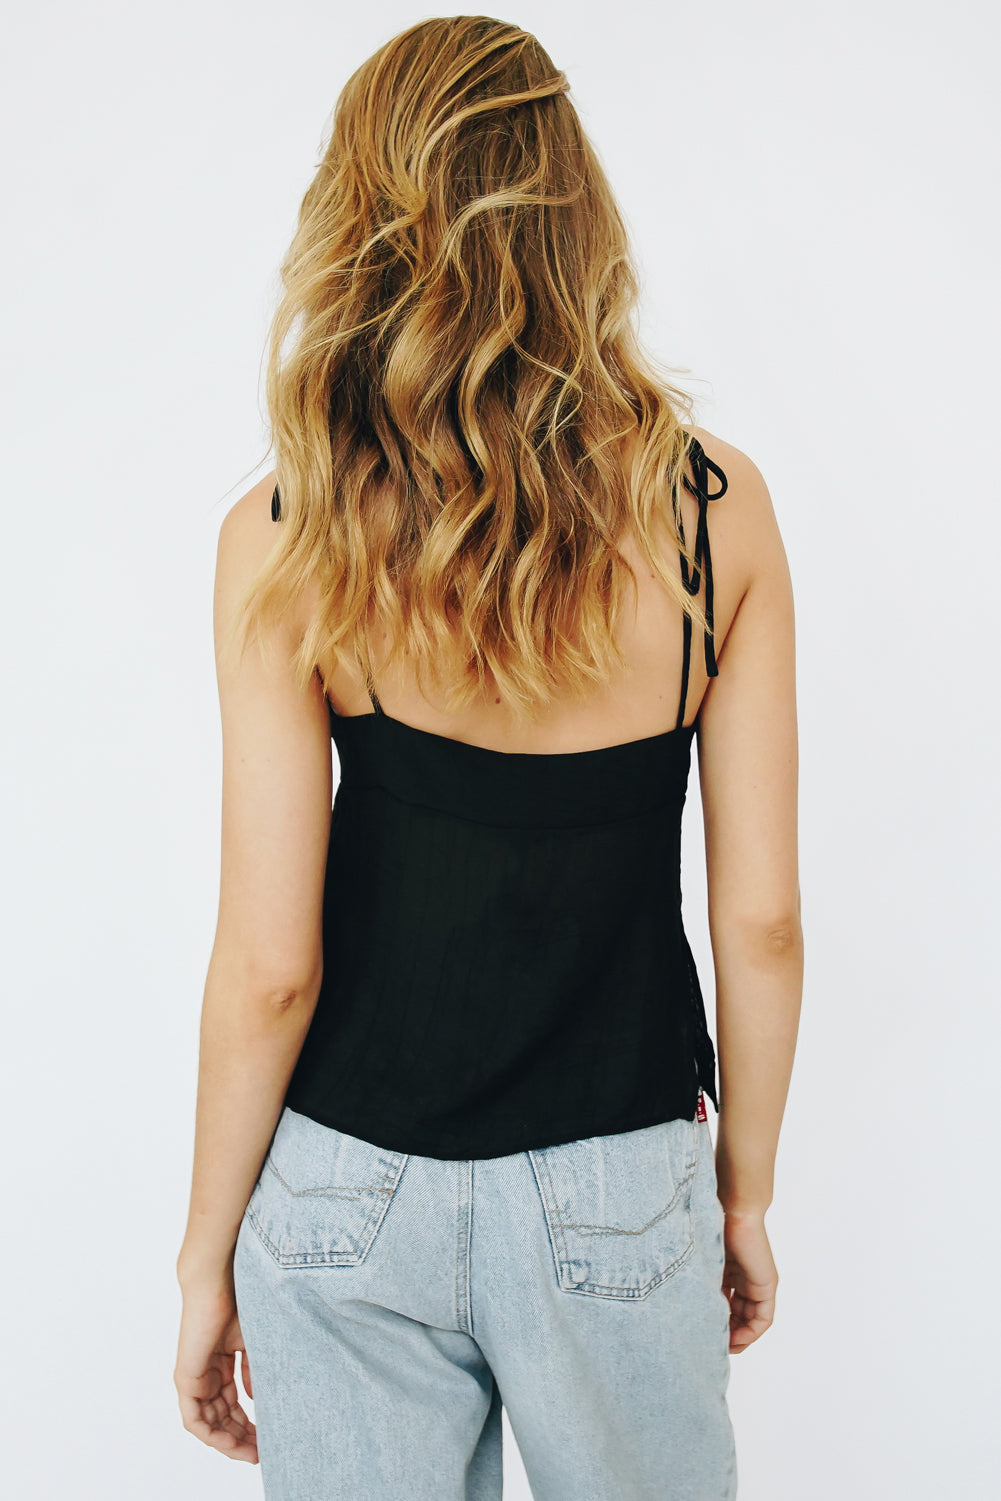 Coastal Town Knit Cami // Natural